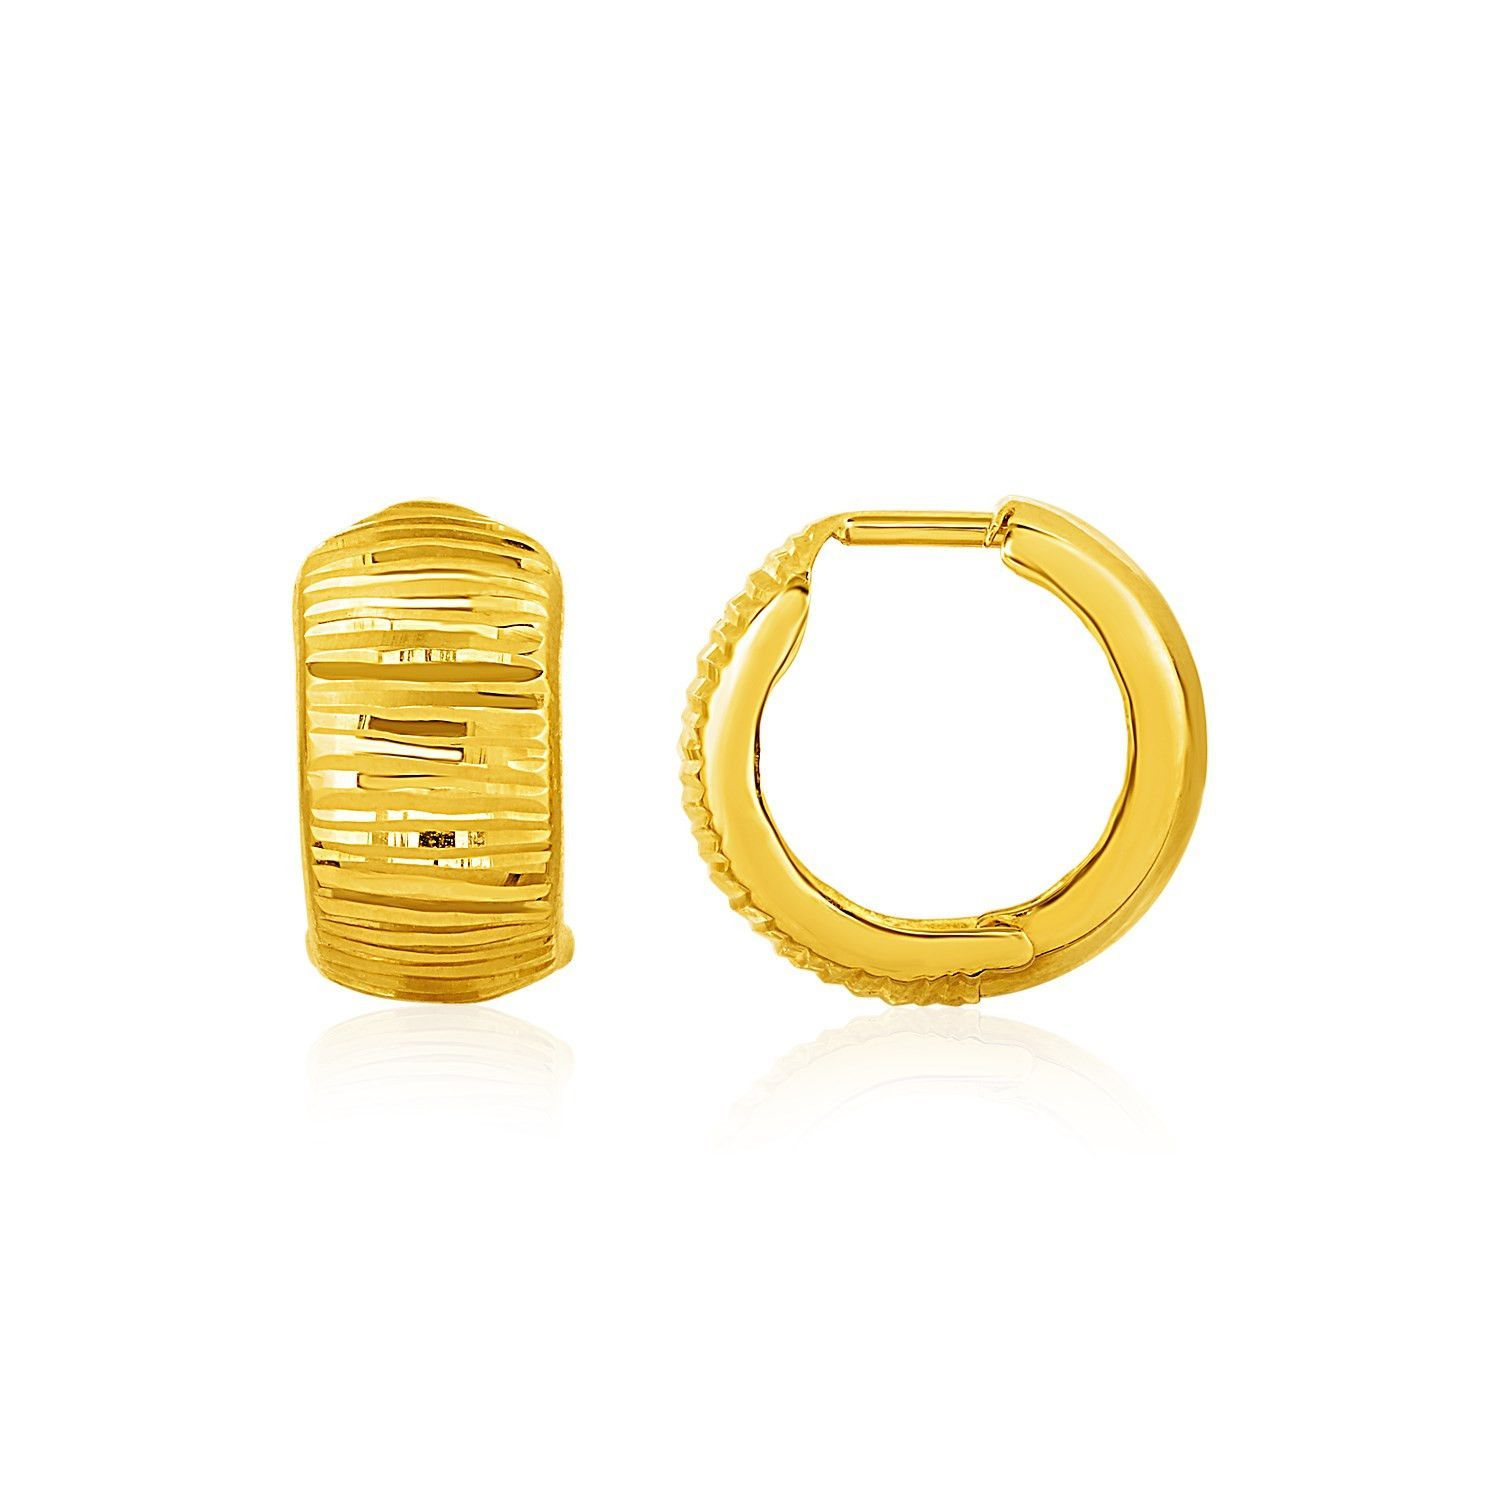 77140a928 Choose either texture or a smooth shine by wearing these reversible gold  hoop earrings. Snuggable